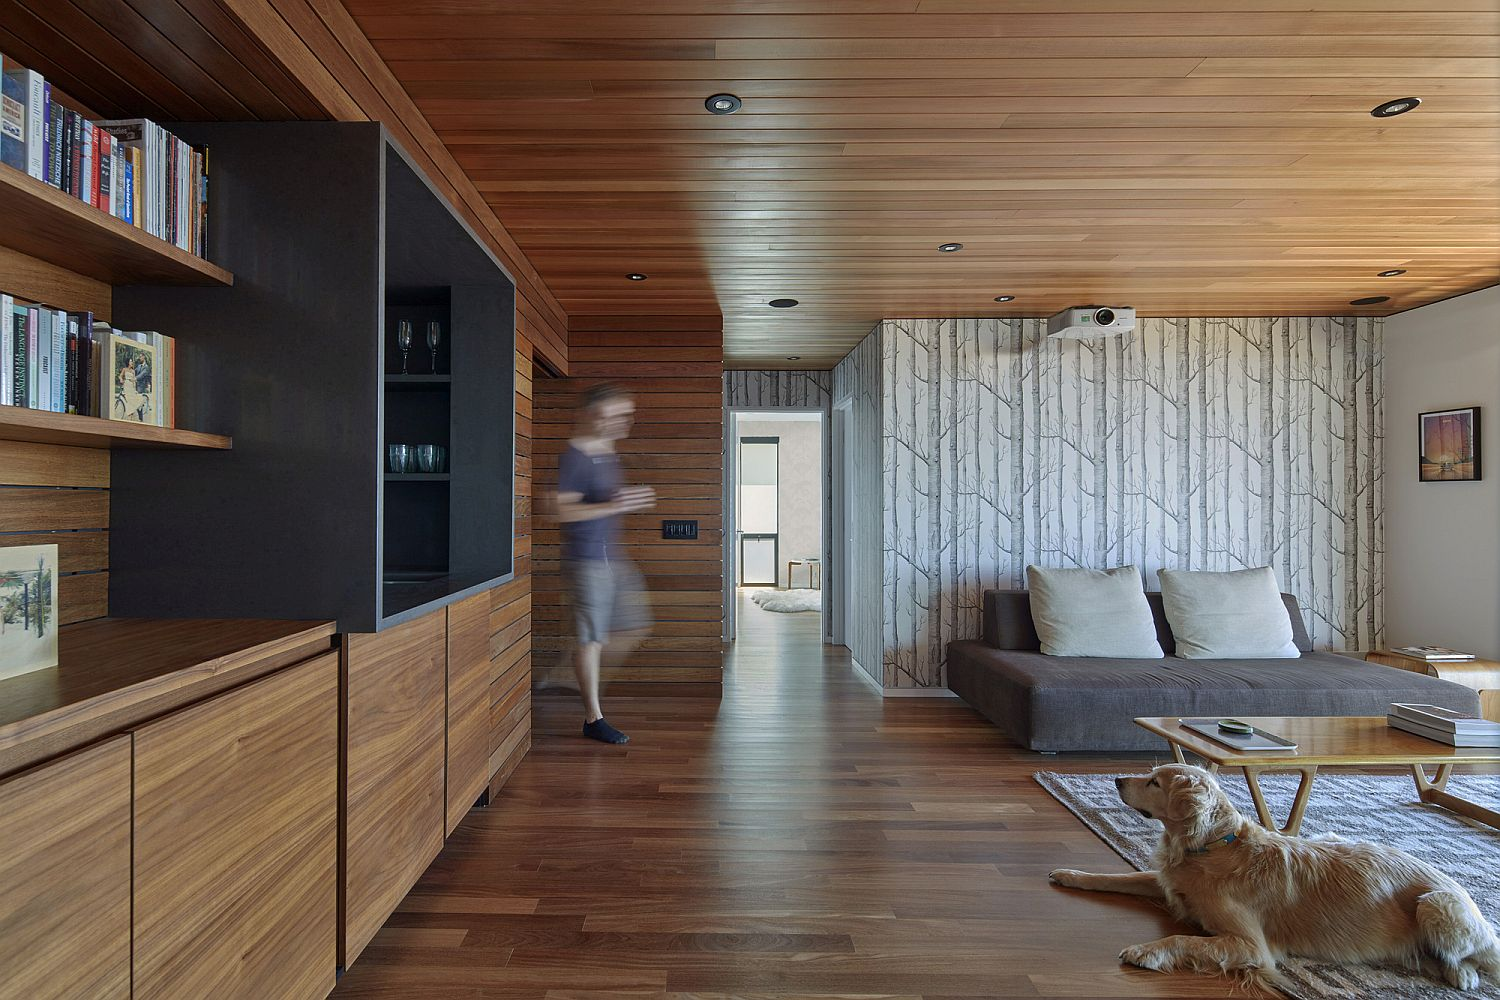 Interior draped in wood along with the Woods wallpaper!